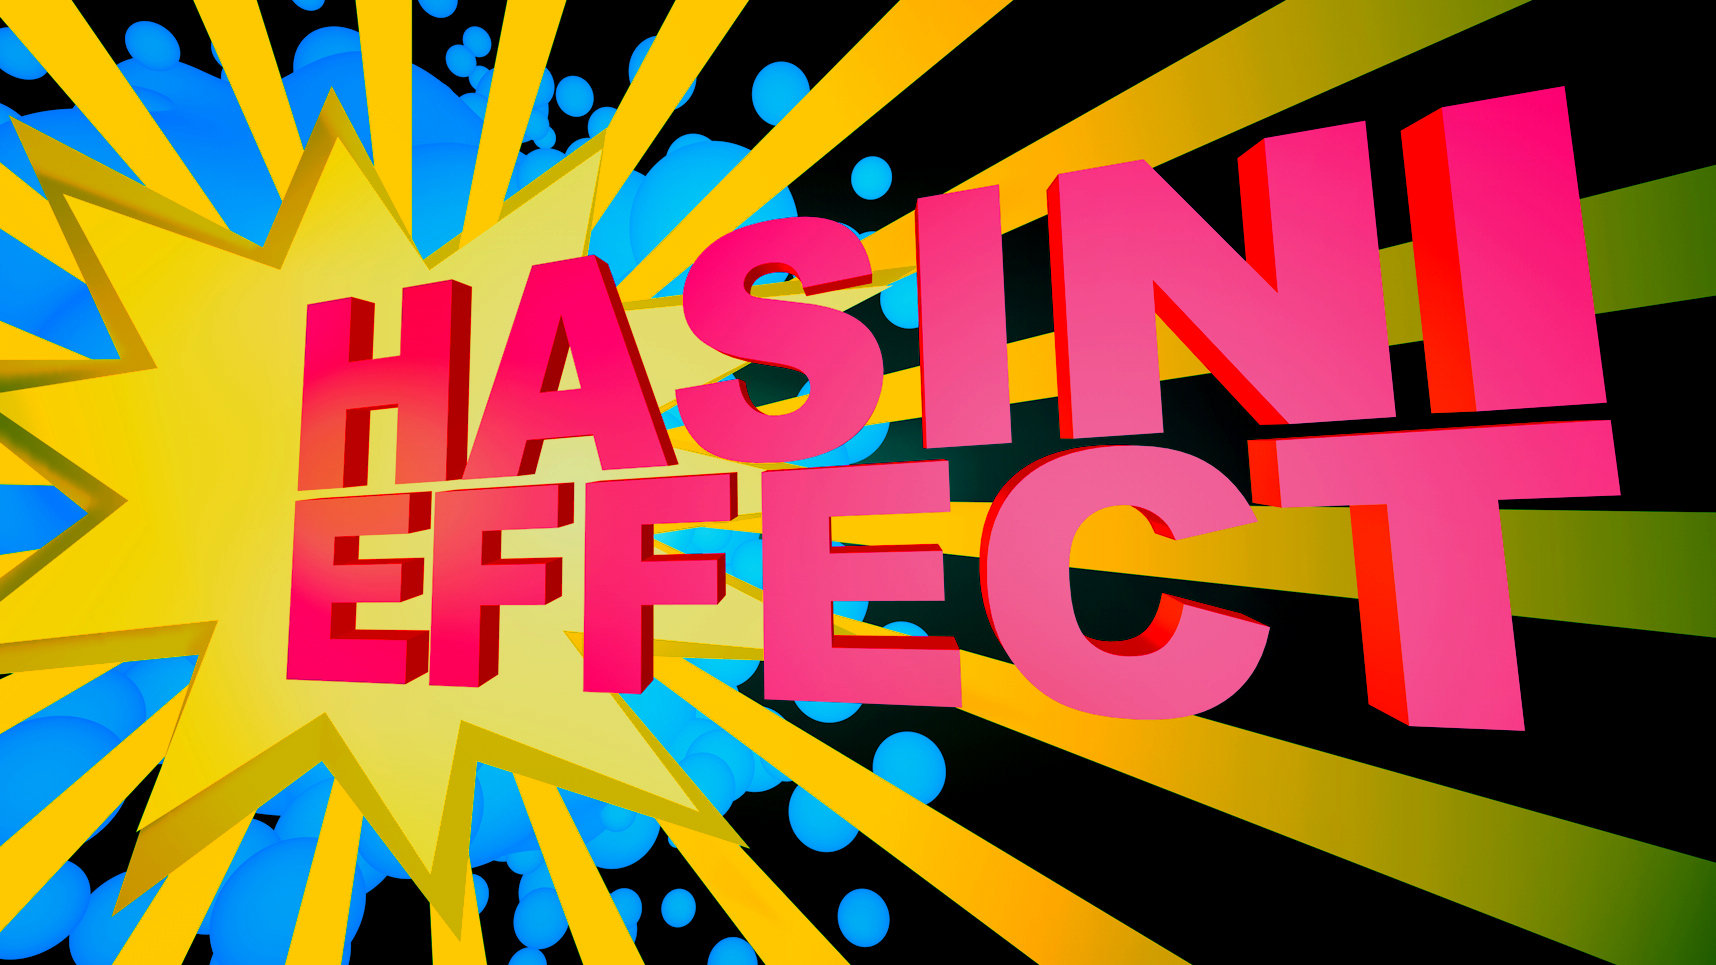 #hasinieffect logo splash designed by Martin Rietveld for a Ted talk slide deck.